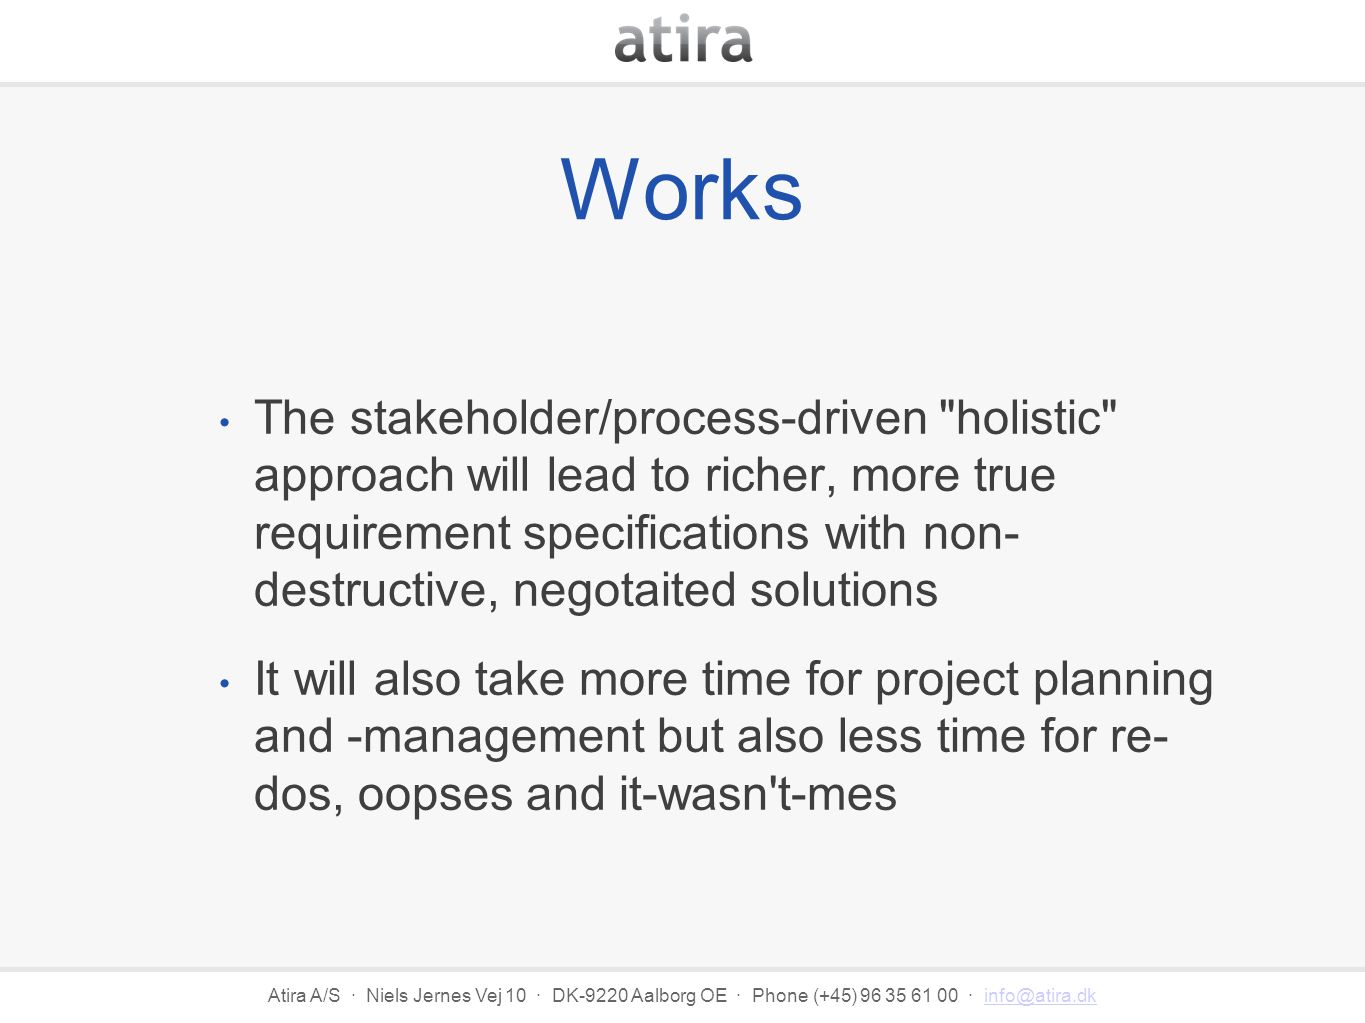 Atira A/S · Niels Jernes Vej 10 · DK-9220 Aalborg OE · Phone (+45) 96 35 61 00 · info@atira.dkinfo@atira.dk Works The stakeholder/process-driven holistic approach will lead to richer, more true requirement specifications with non- destructive, negotaited solutions It will also take more time for project planning and -management but also less time for re- dos, oopses and it-wasn t-mes